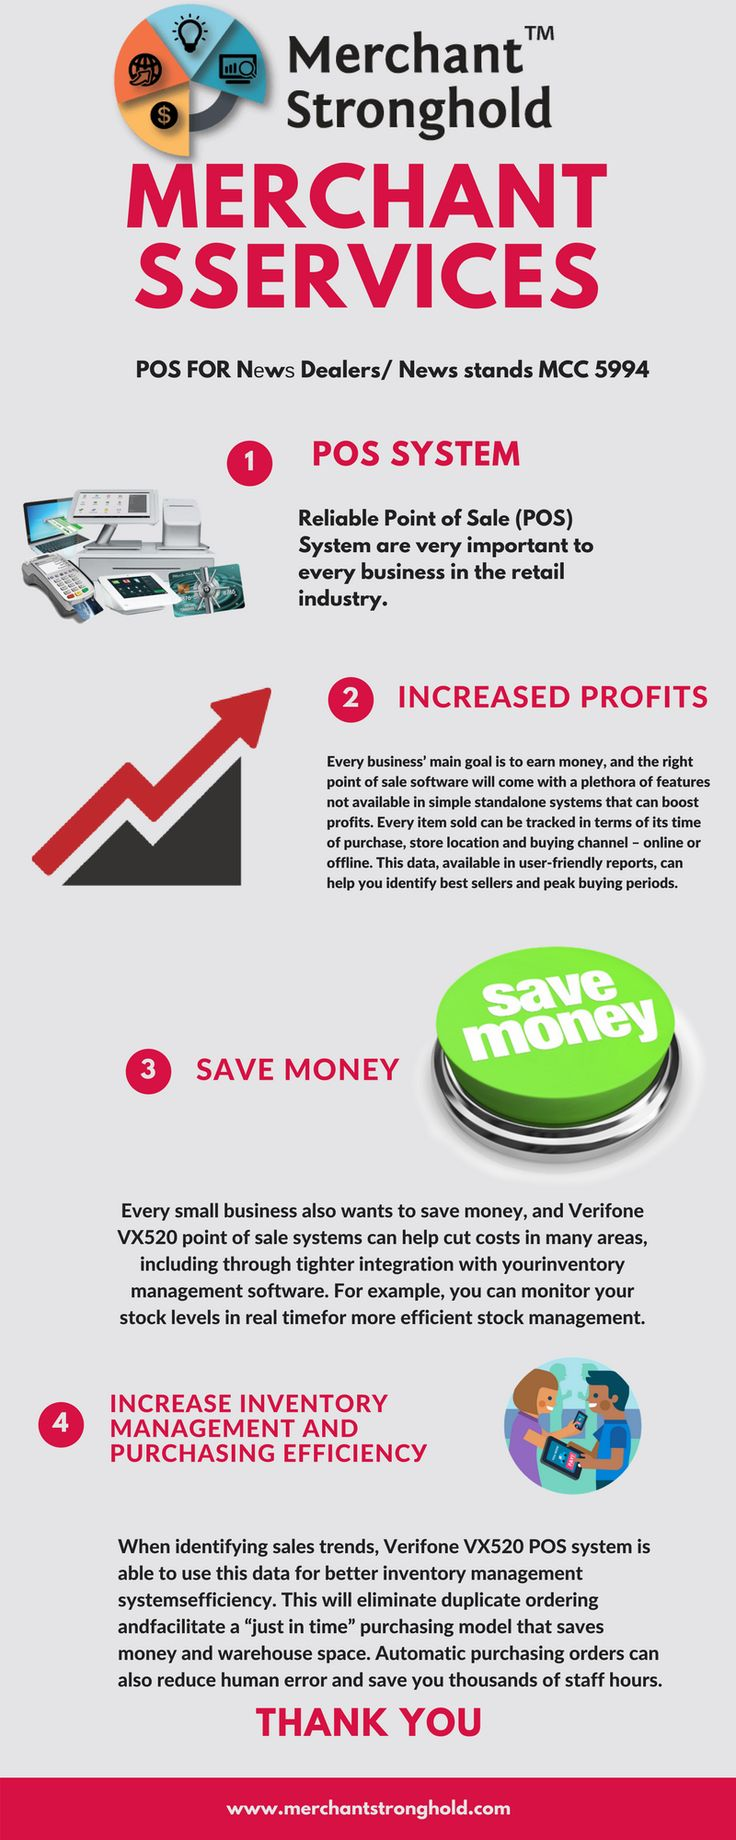 Online Merchant Account POS FOR Nеwѕ Dealers/ News stands MCC 5994 #infographic http://bit.ly/2mvUxoF